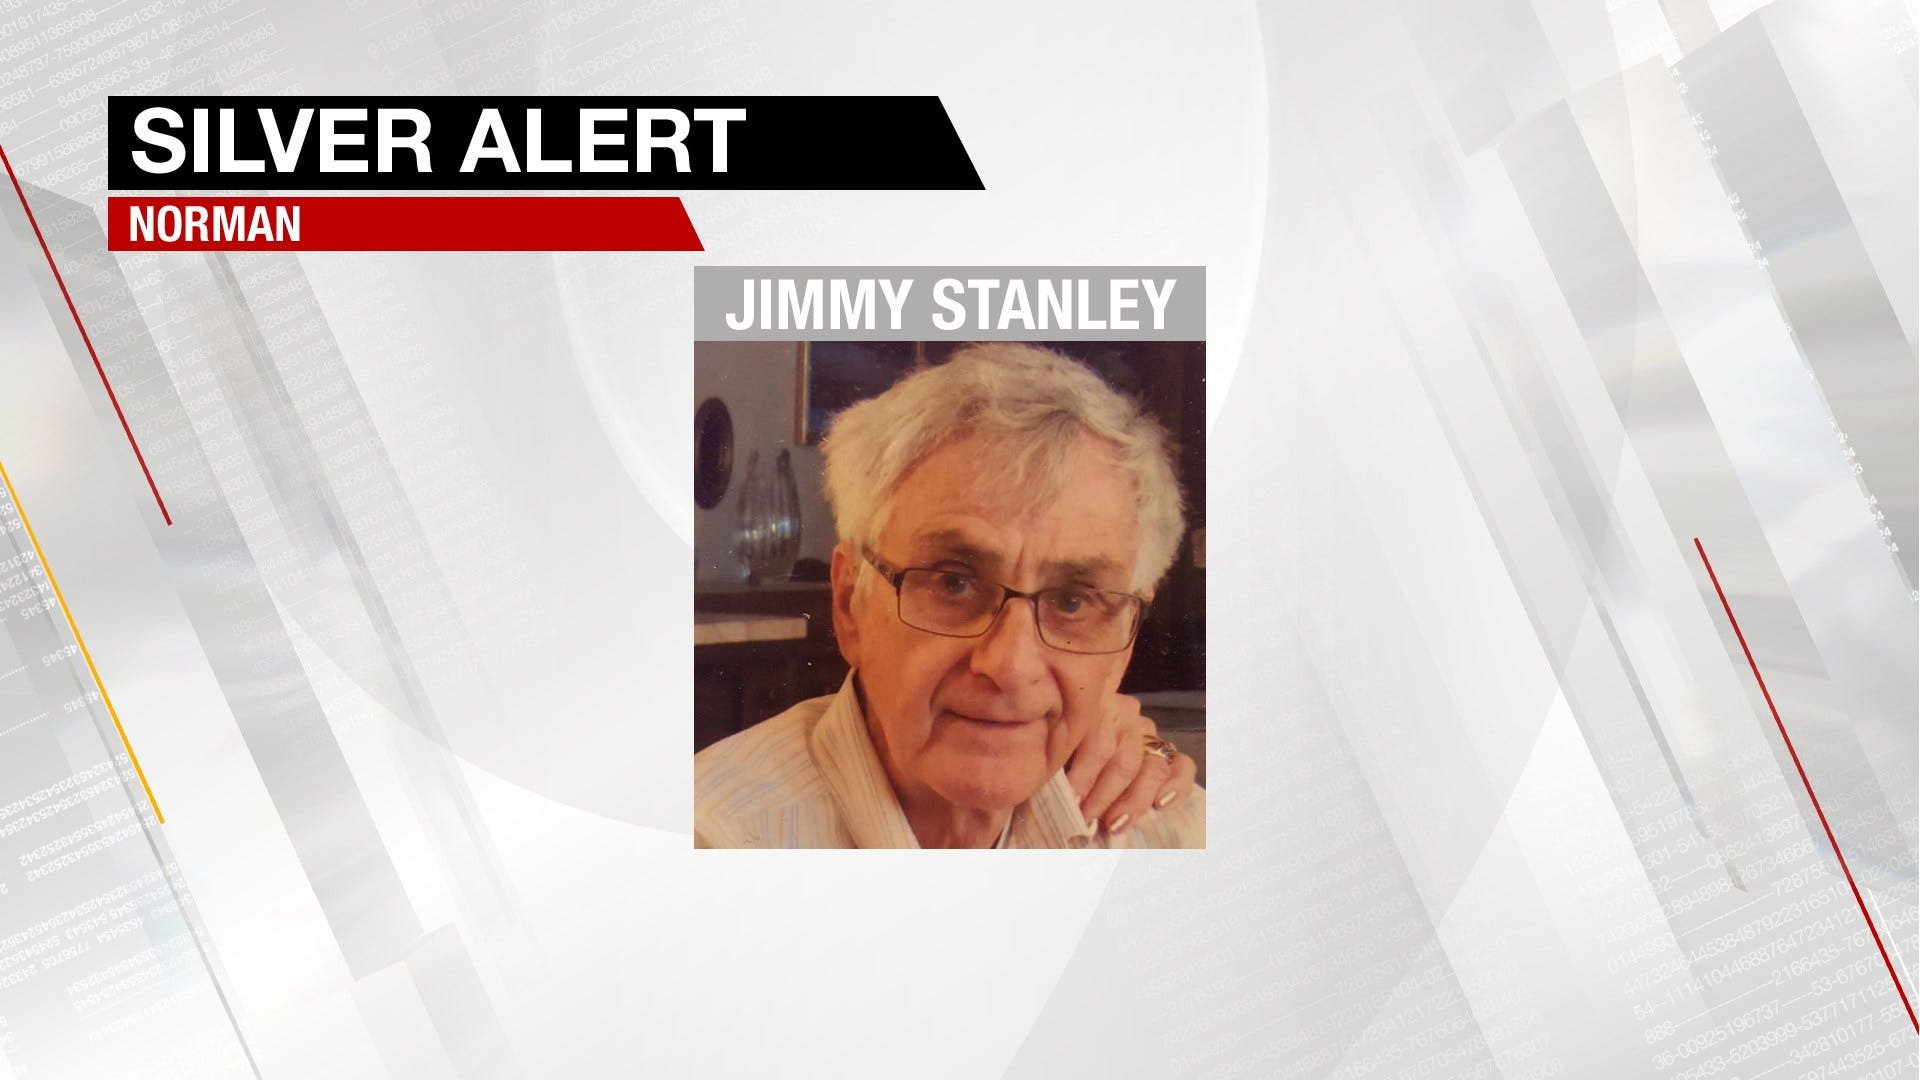 79-Year-Old Norman Man Found After Silver Alert